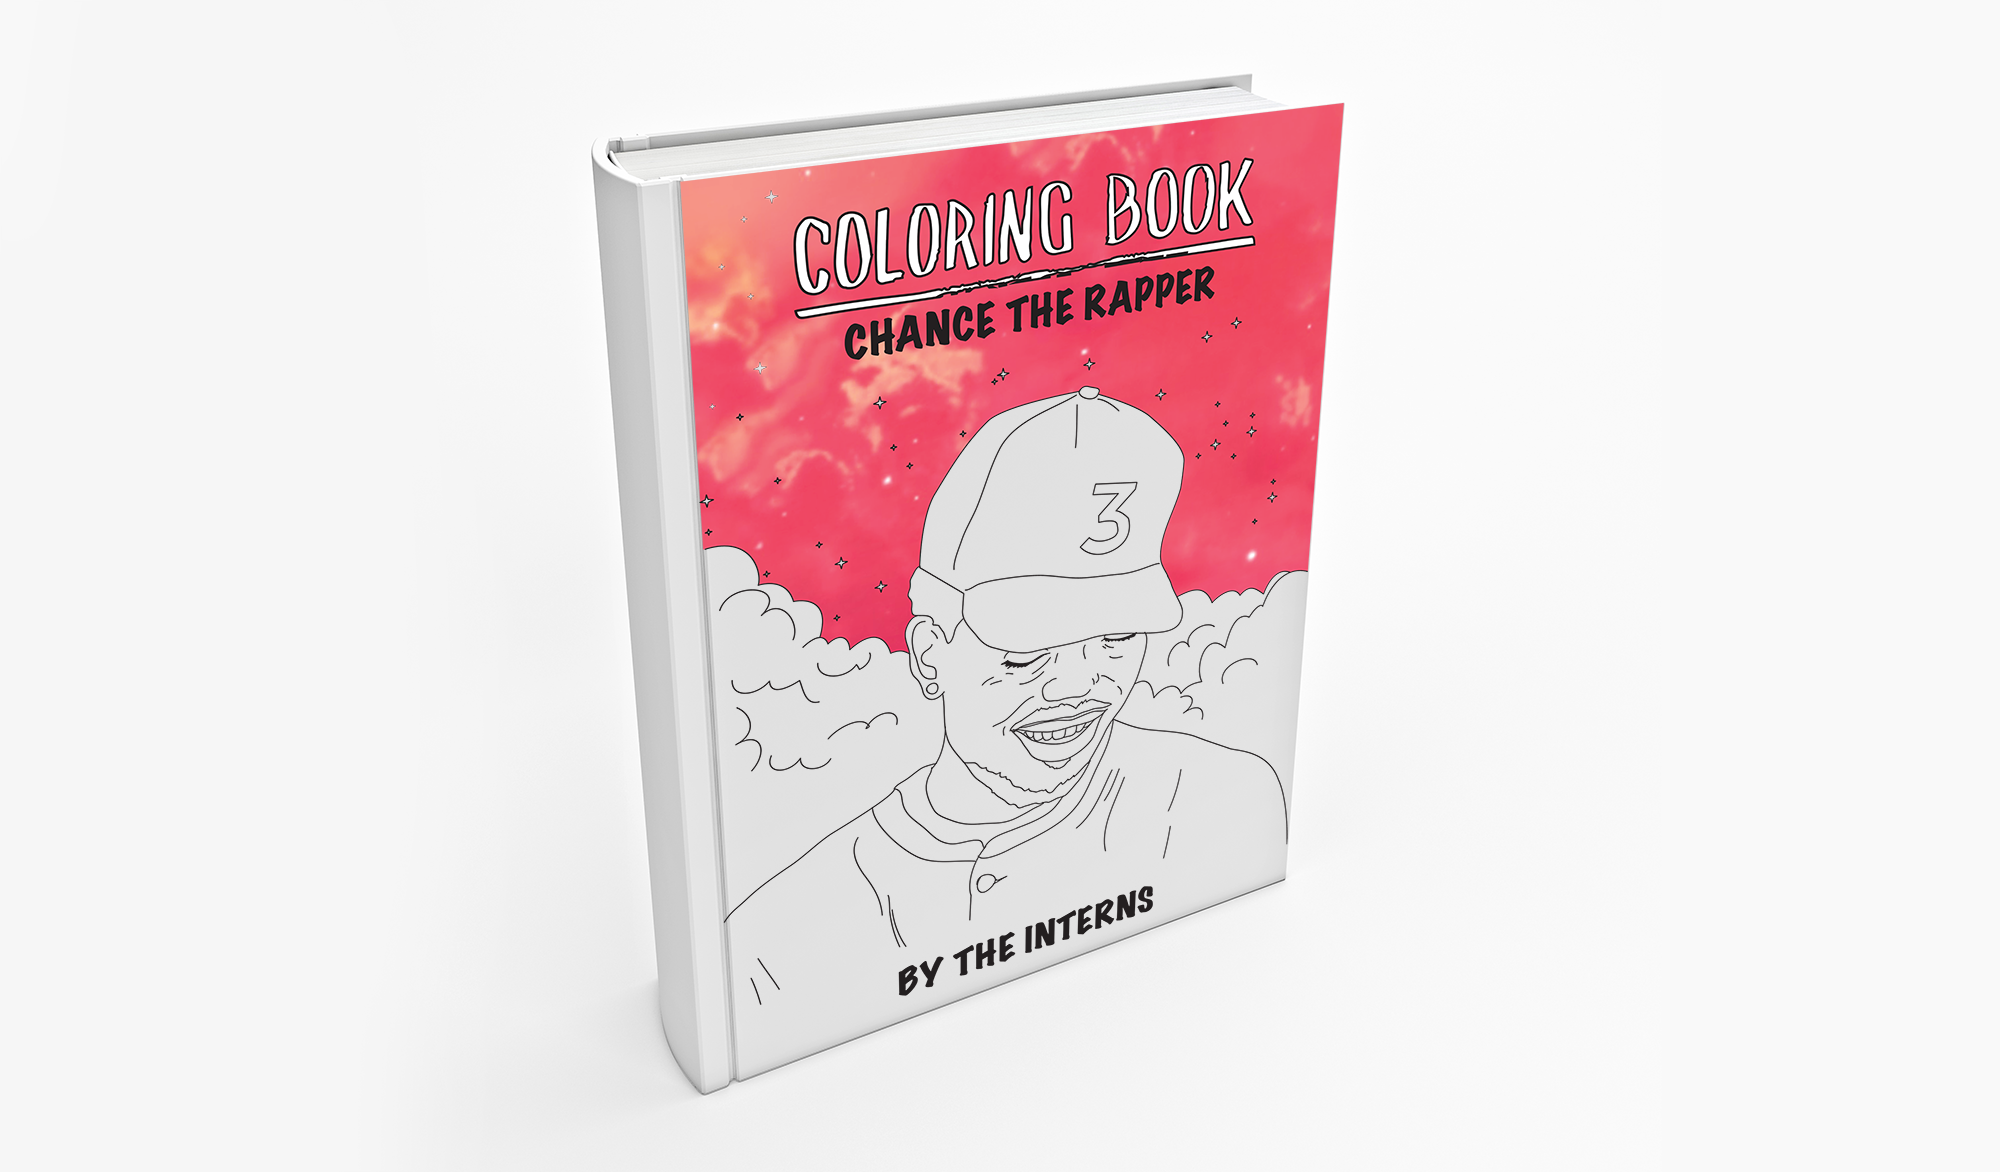 Heres Very Literally A Chance The Rapper Coloring Book For You To Color In